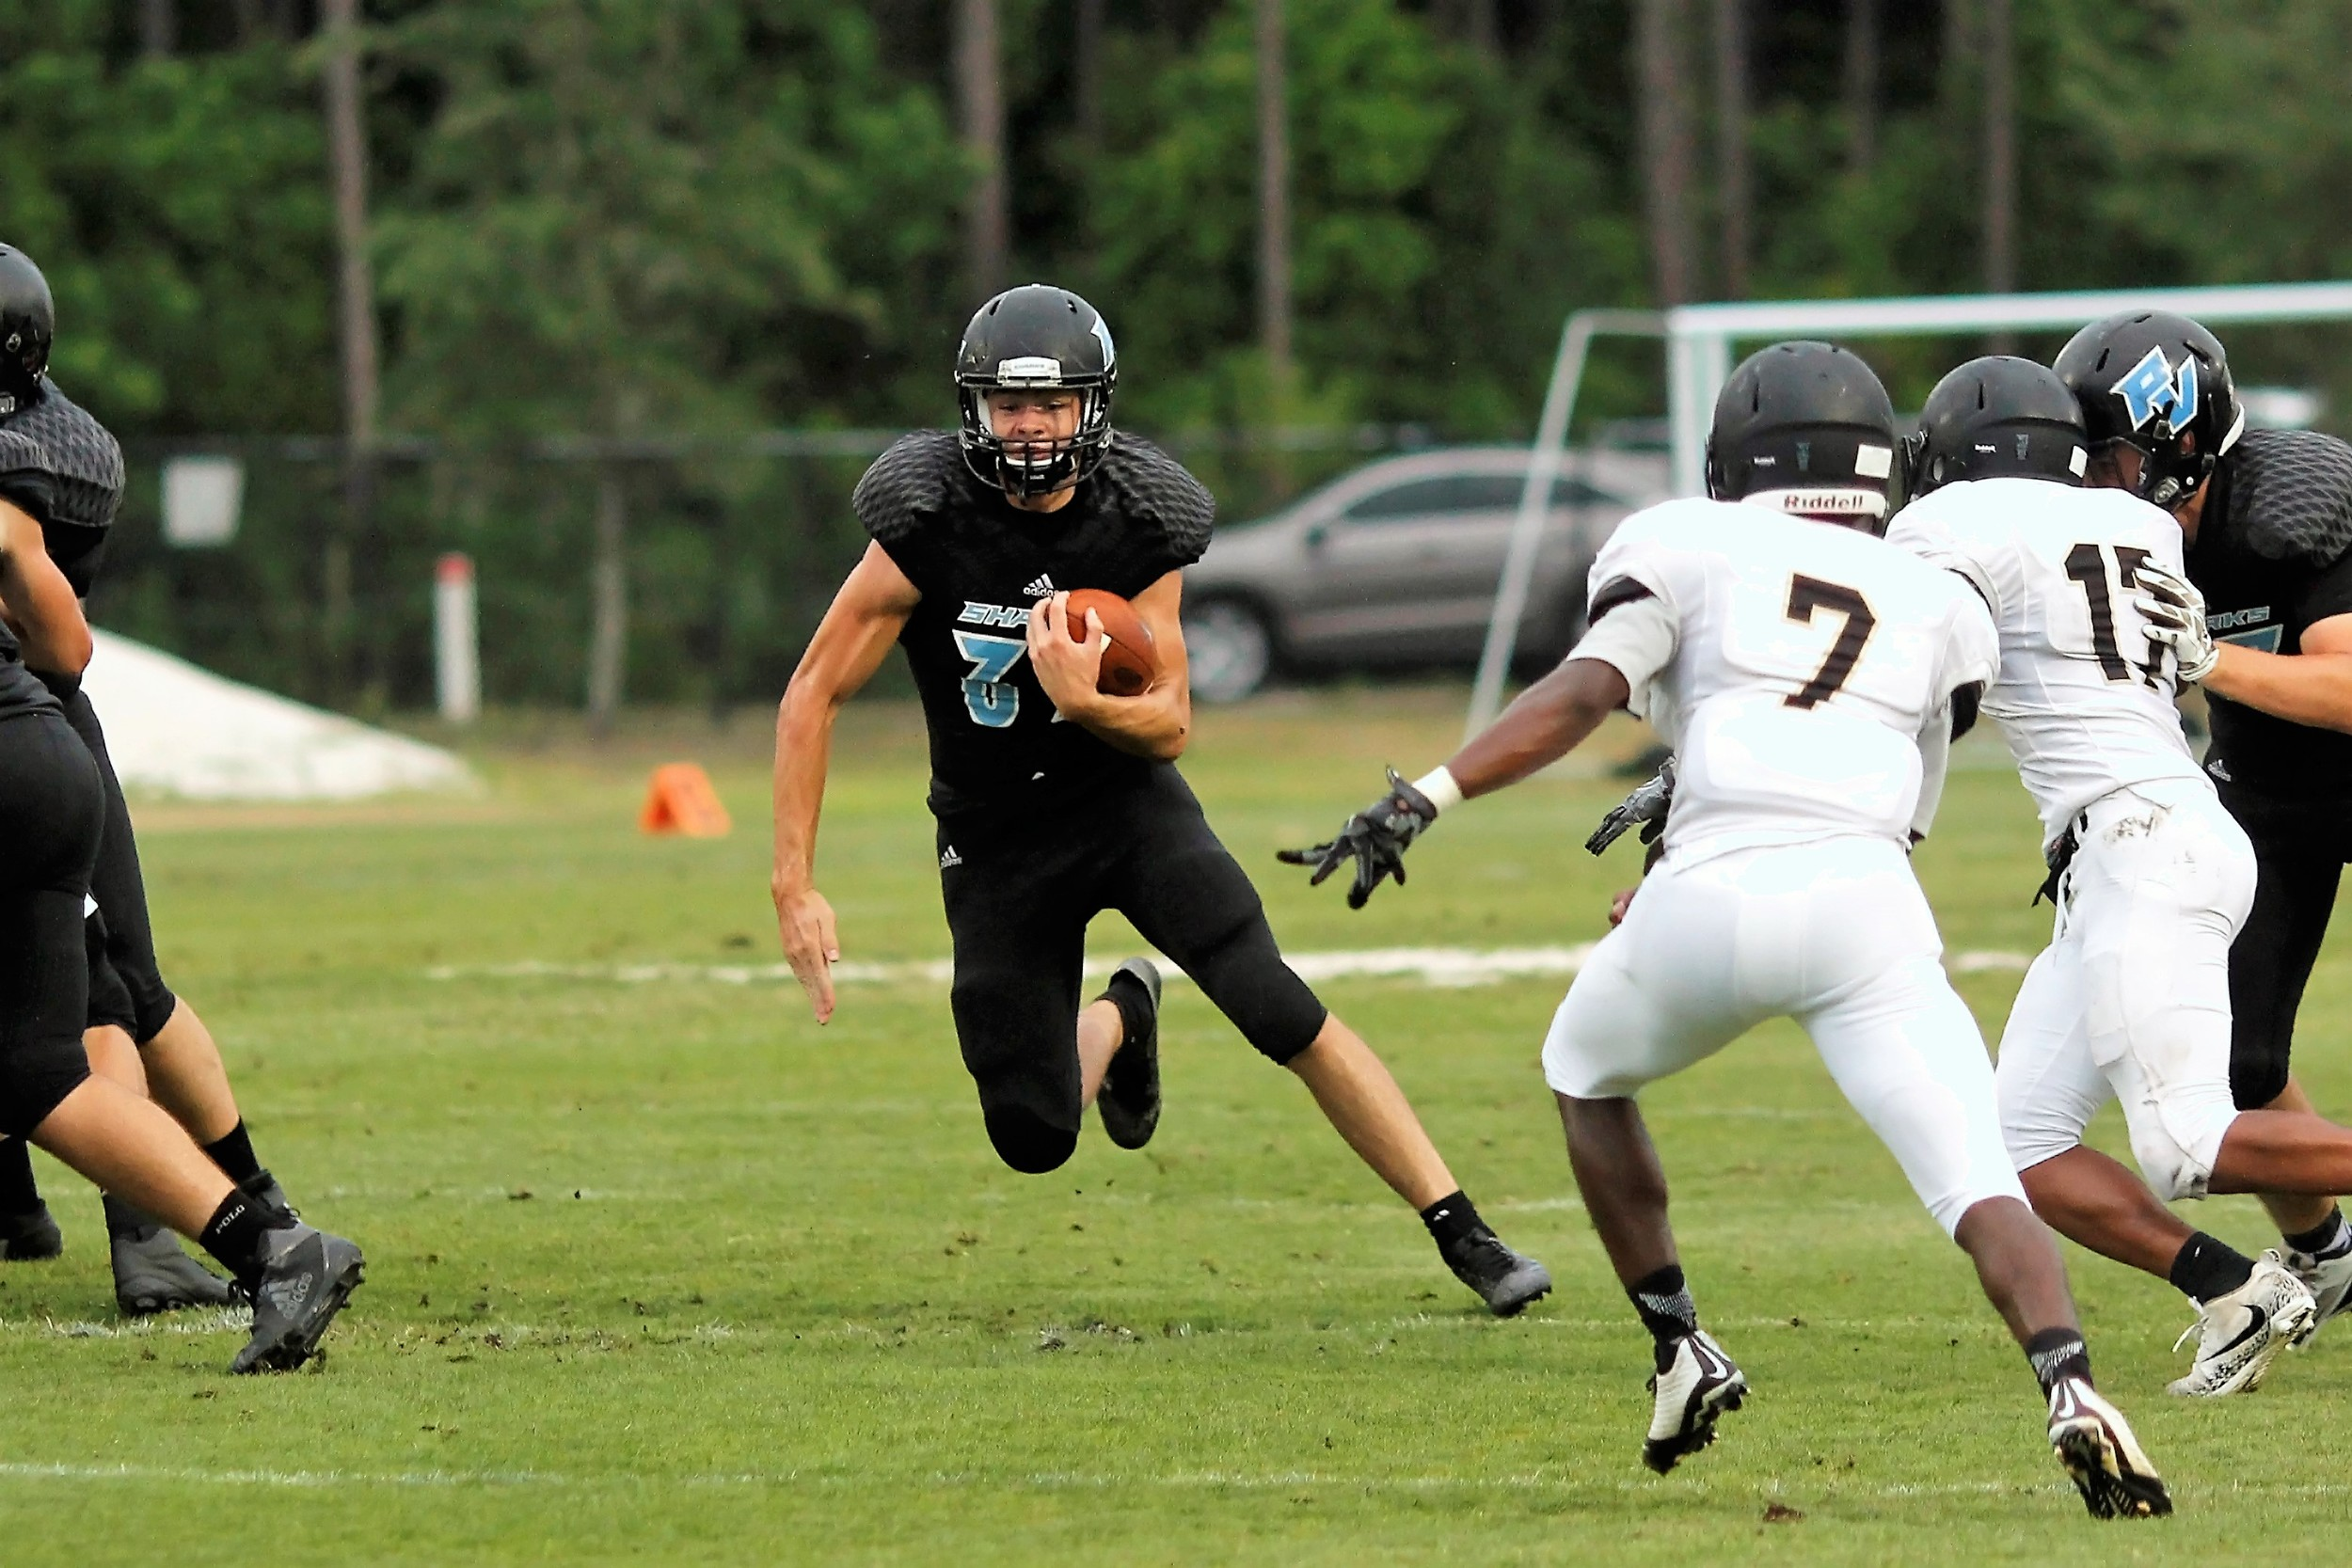 Running back Zach King carries the ball through a big hole.